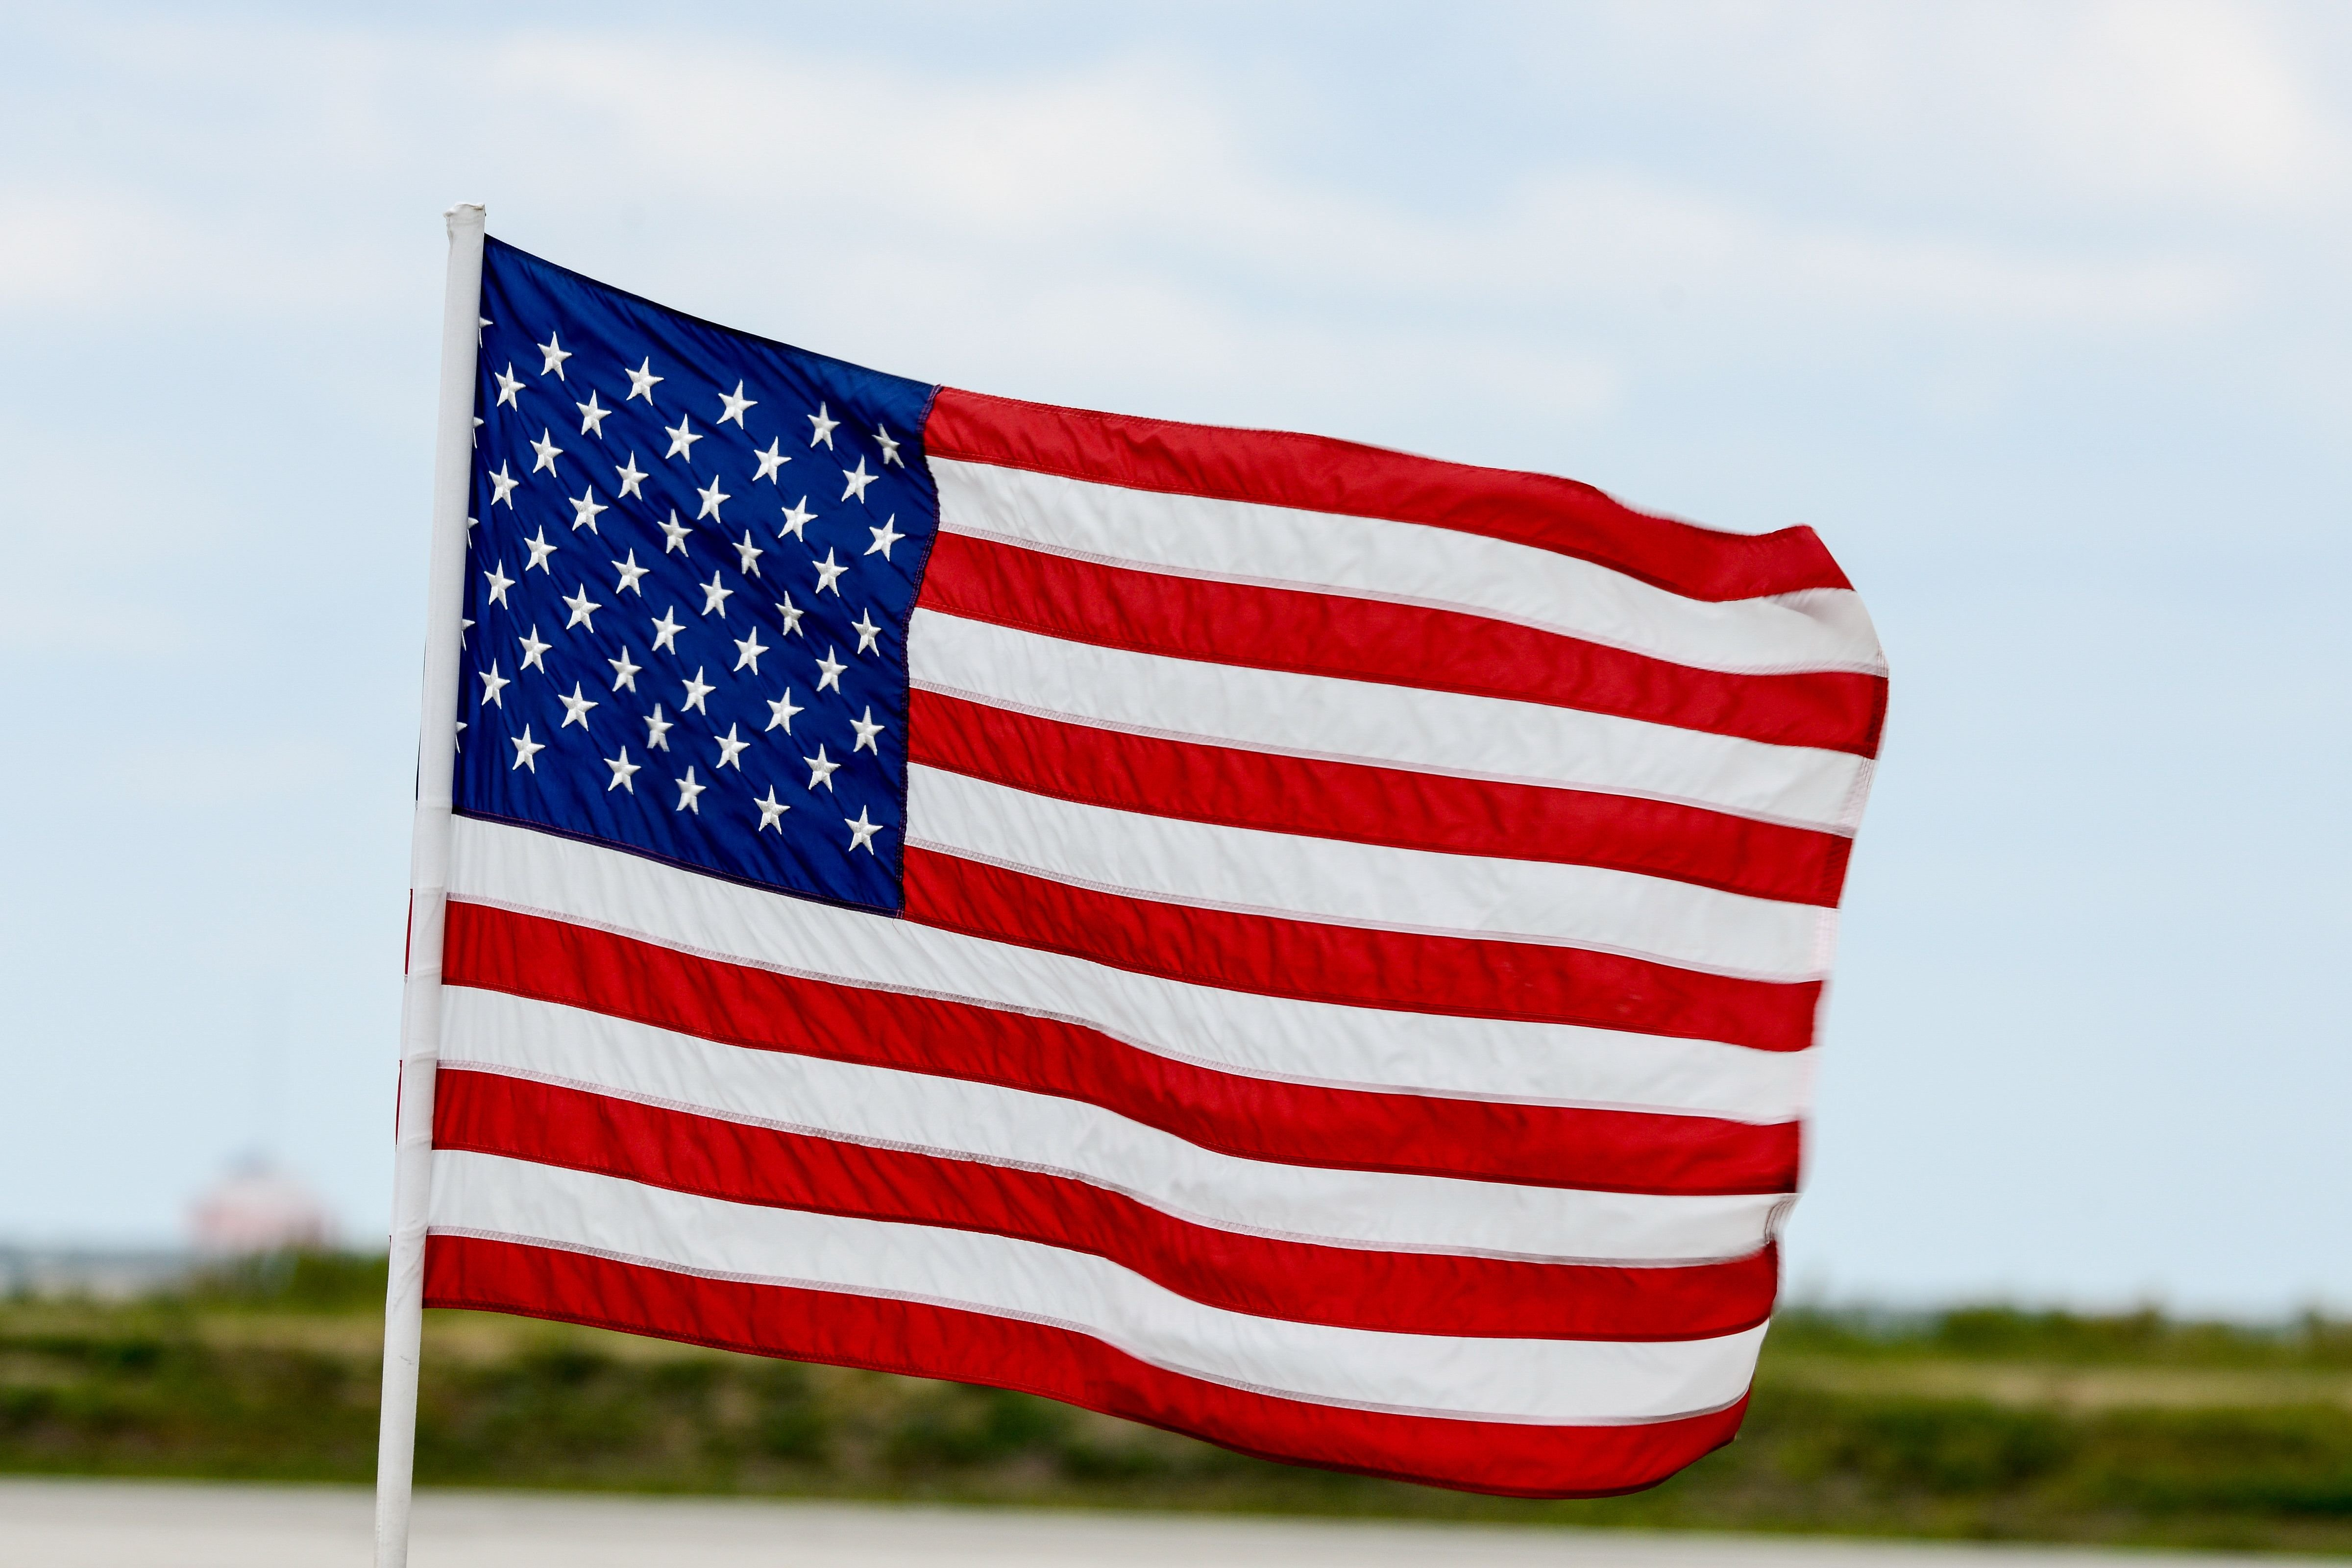 The United States of America (U.S.A) flag.│Source: Shutterstock